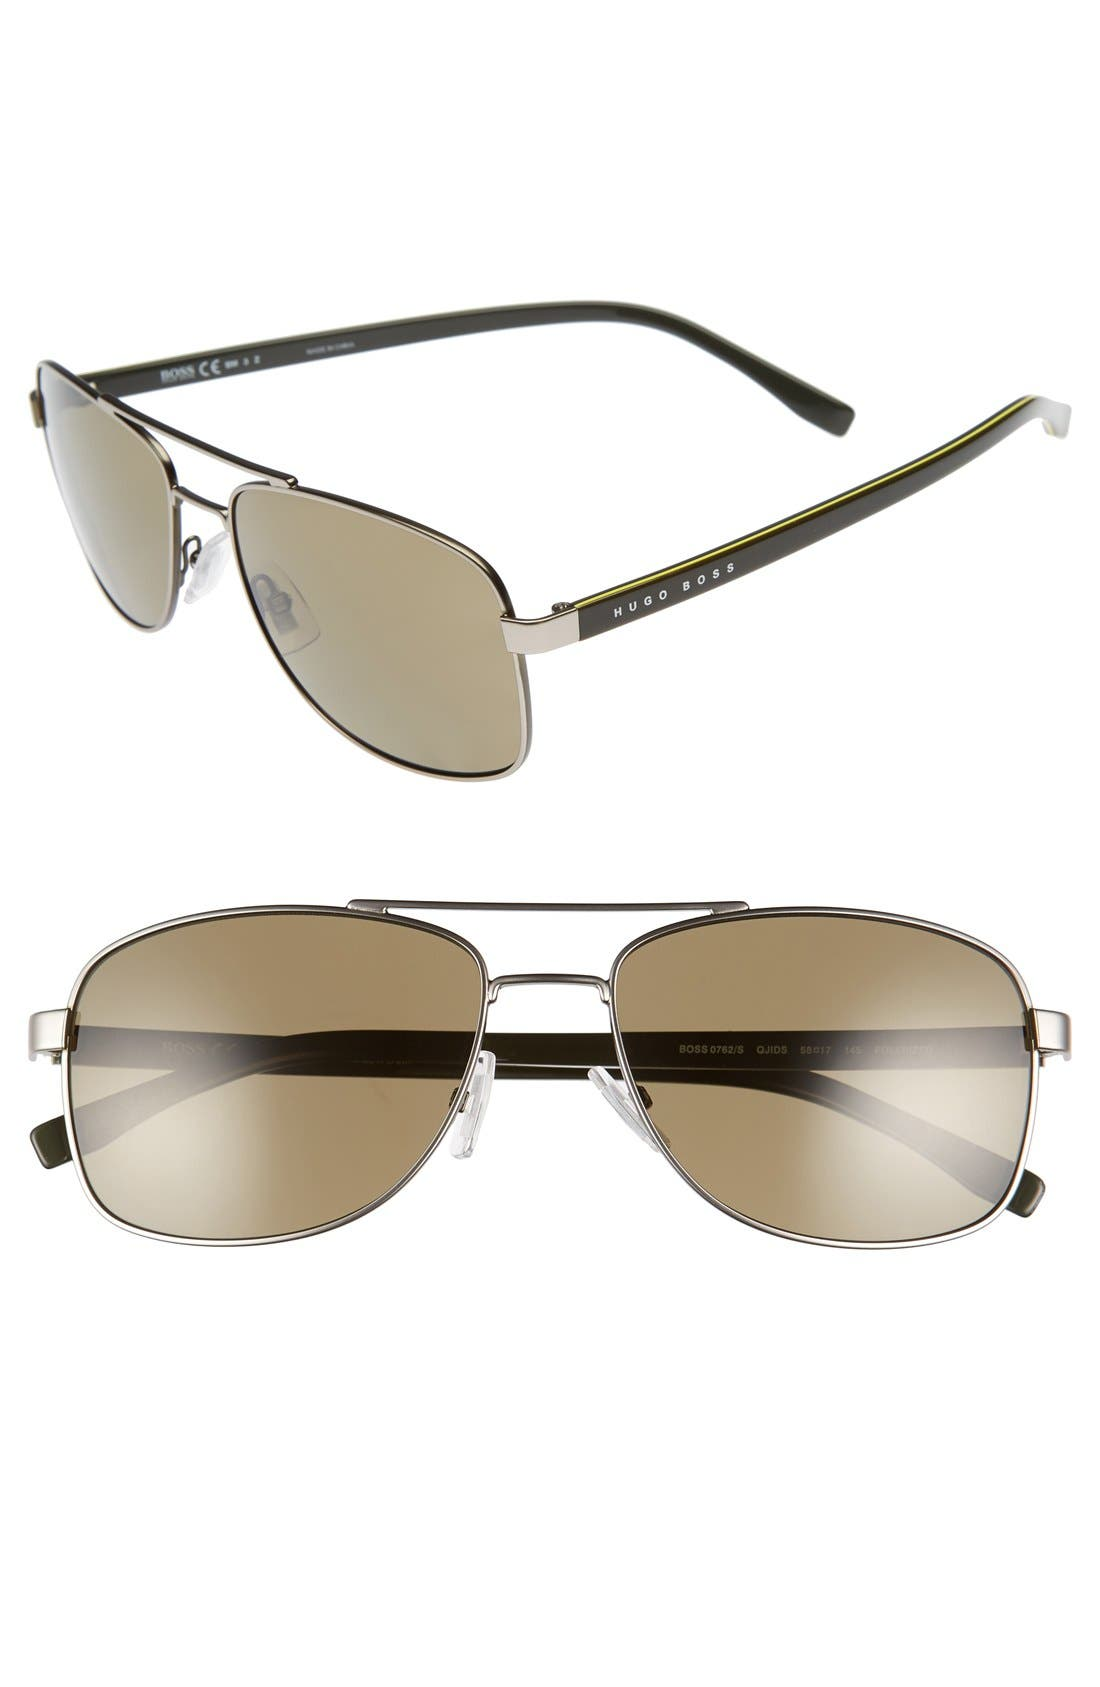 '0762/S' 58mm Polarized Navigator Sunglasses,                             Main thumbnail 1, color,                             Matte Ruthenium Khaki